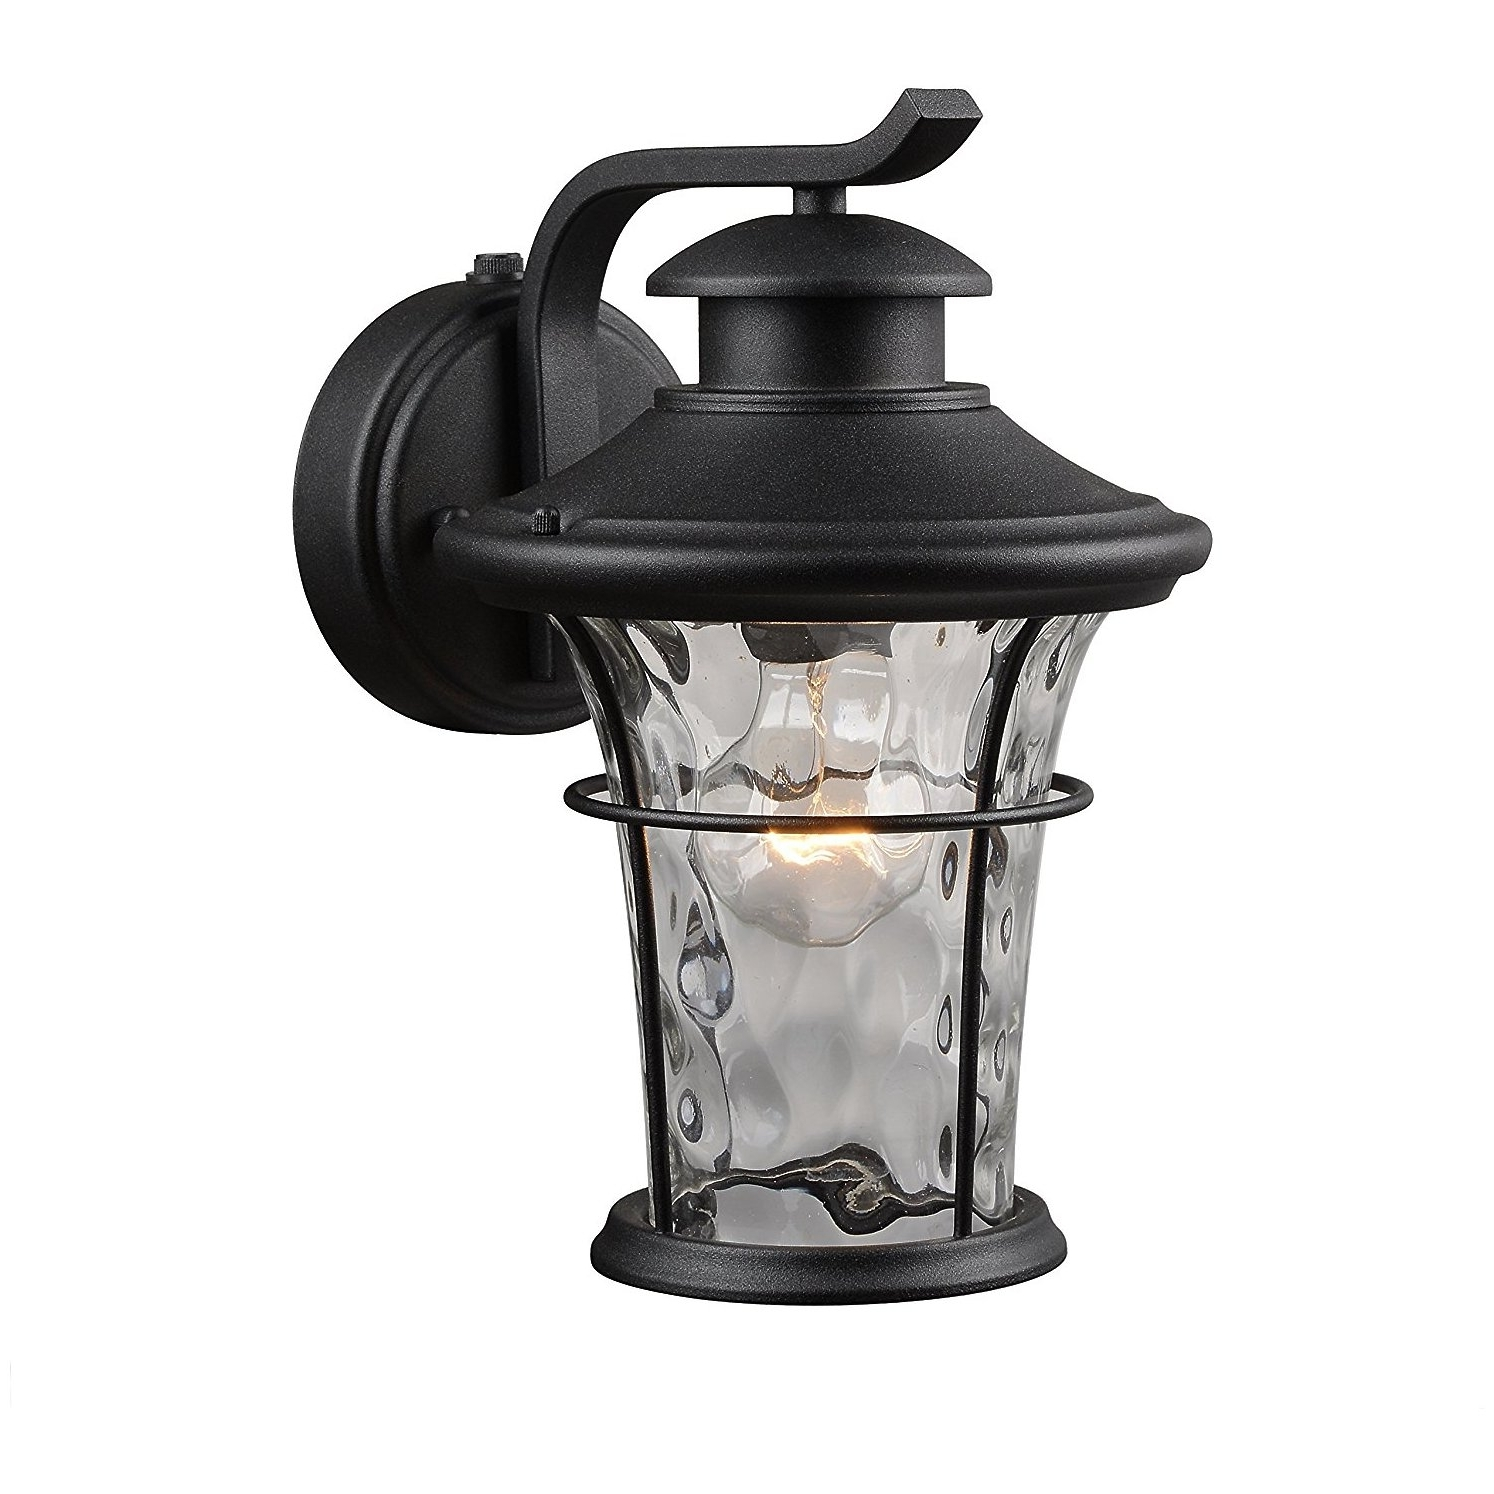 Outdoor Lanterns With Photocell In Most Up To Date Hardware House 21 2274 Outdoor Water Glass Wall Lantern With Photo (View 4 of 20)